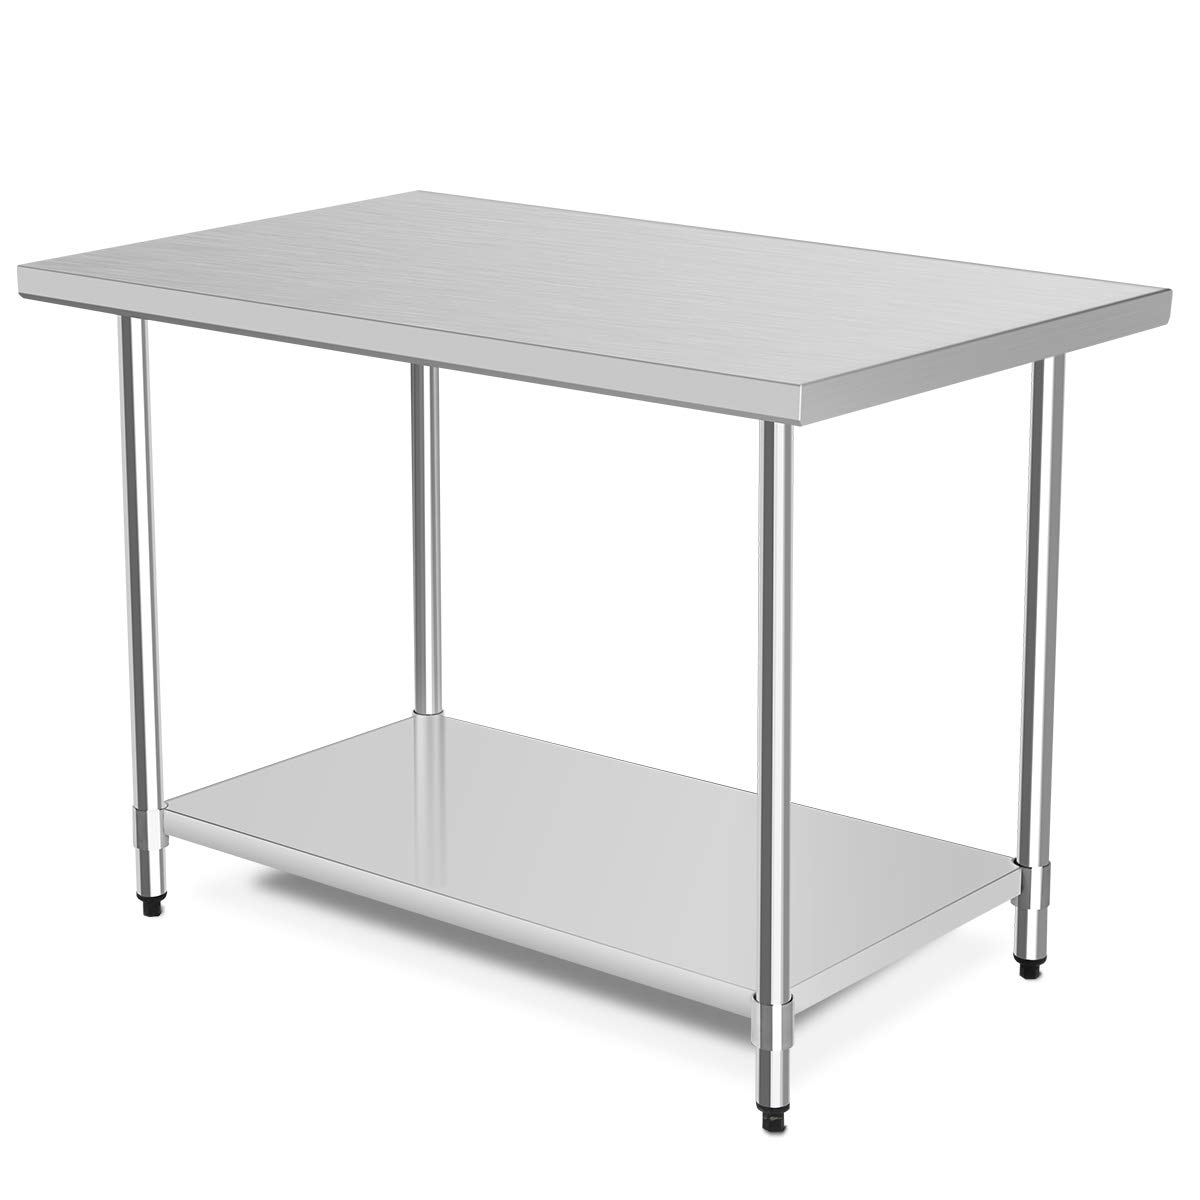 48'' x 30'' NSF Stainless Steel Table, Heavy Duty Commercial Kitchen Food Prep Table & Work Table, Wheels Installable, Adjustable Shelf, by WATERJOY